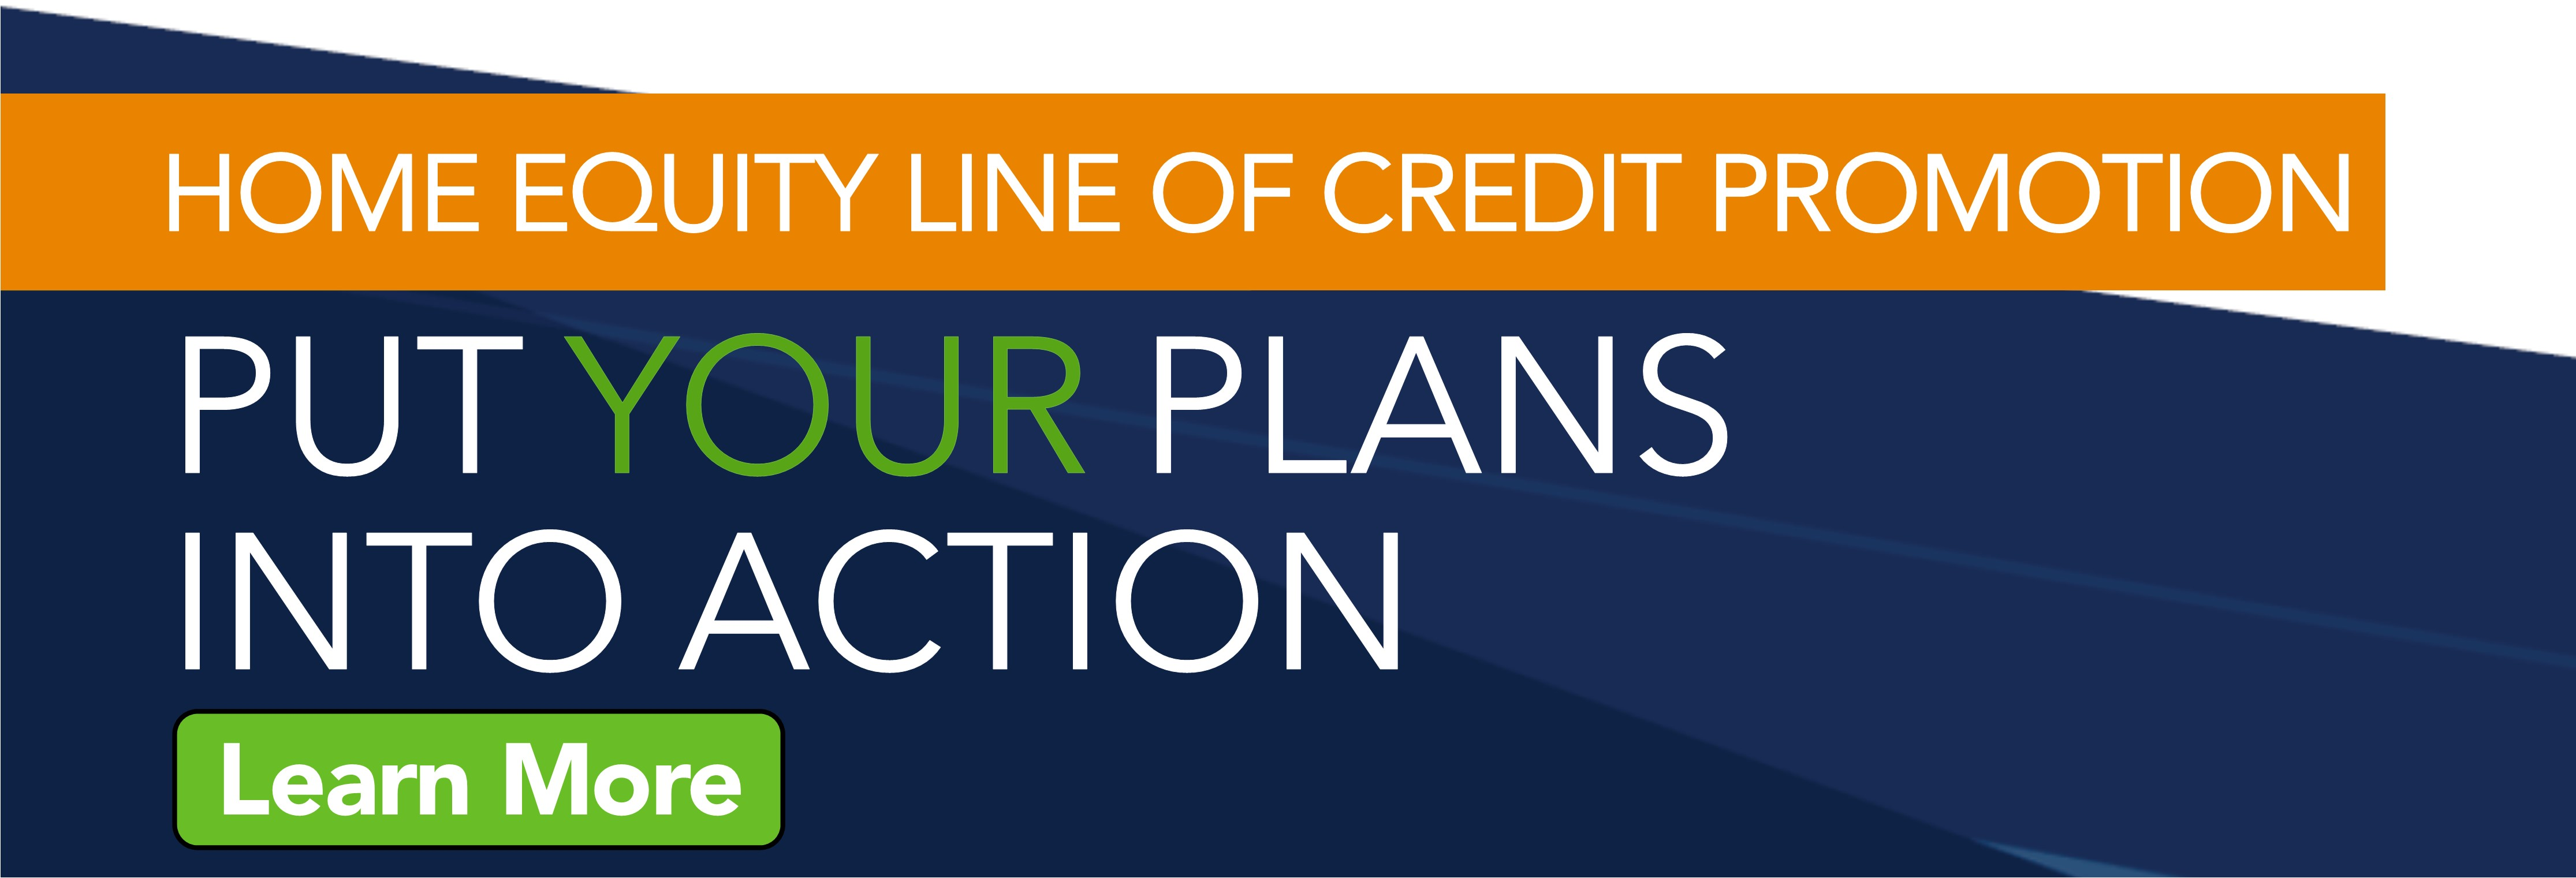 Put your plans into Action with our Home Equity Line of Credit promotion.